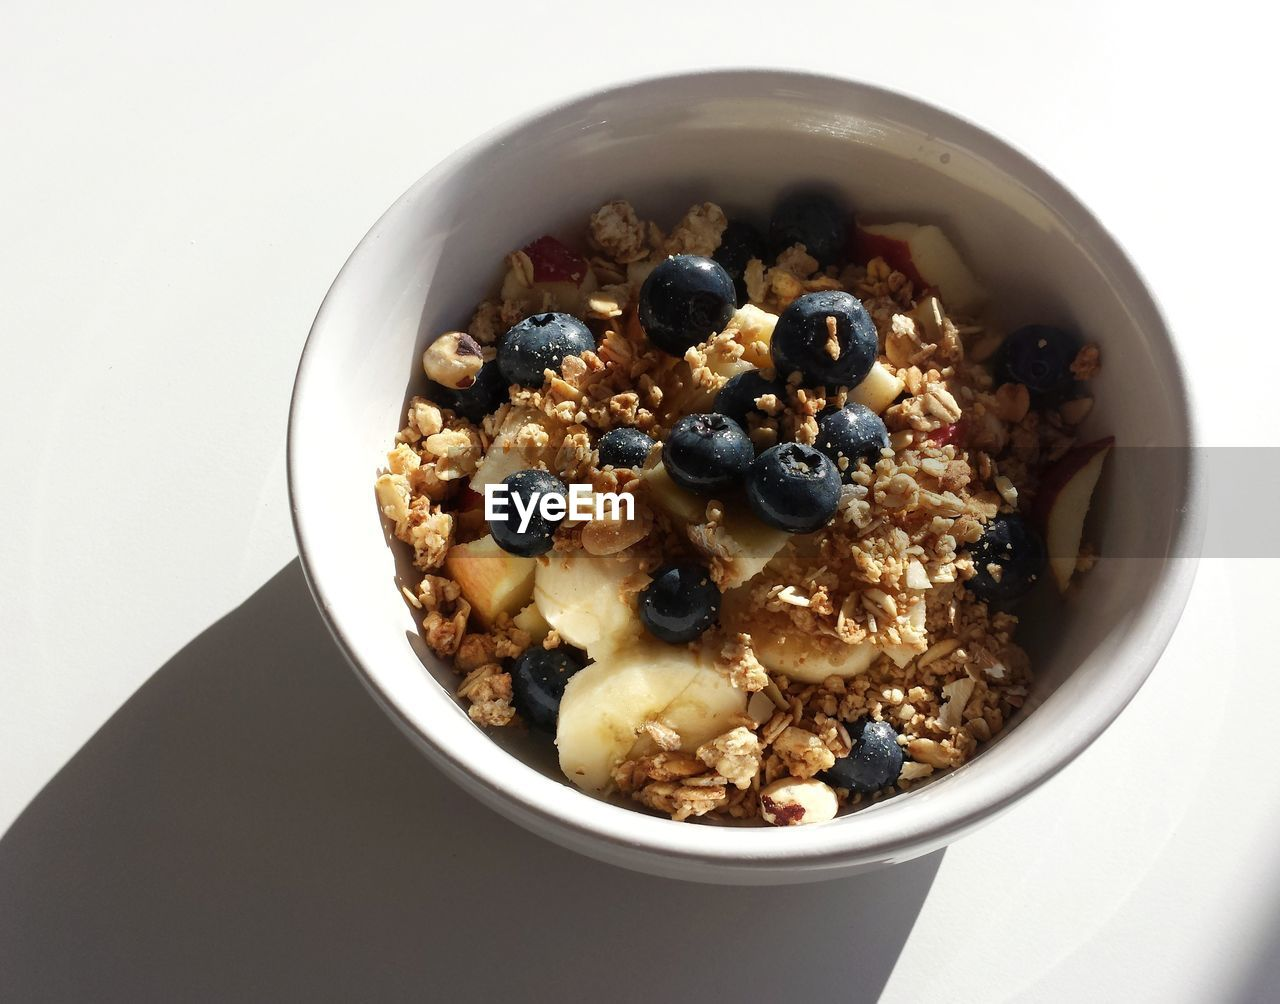 breakfast, bowl, breakfast cereal, healthy eating, blueberry, food and drink, granola, oats - food, freshness, white background, food, fruit, high angle view, milk, corn flakes, no people, indoors, drink, oat flake, studio shot, ready-to-eat, close-up, day